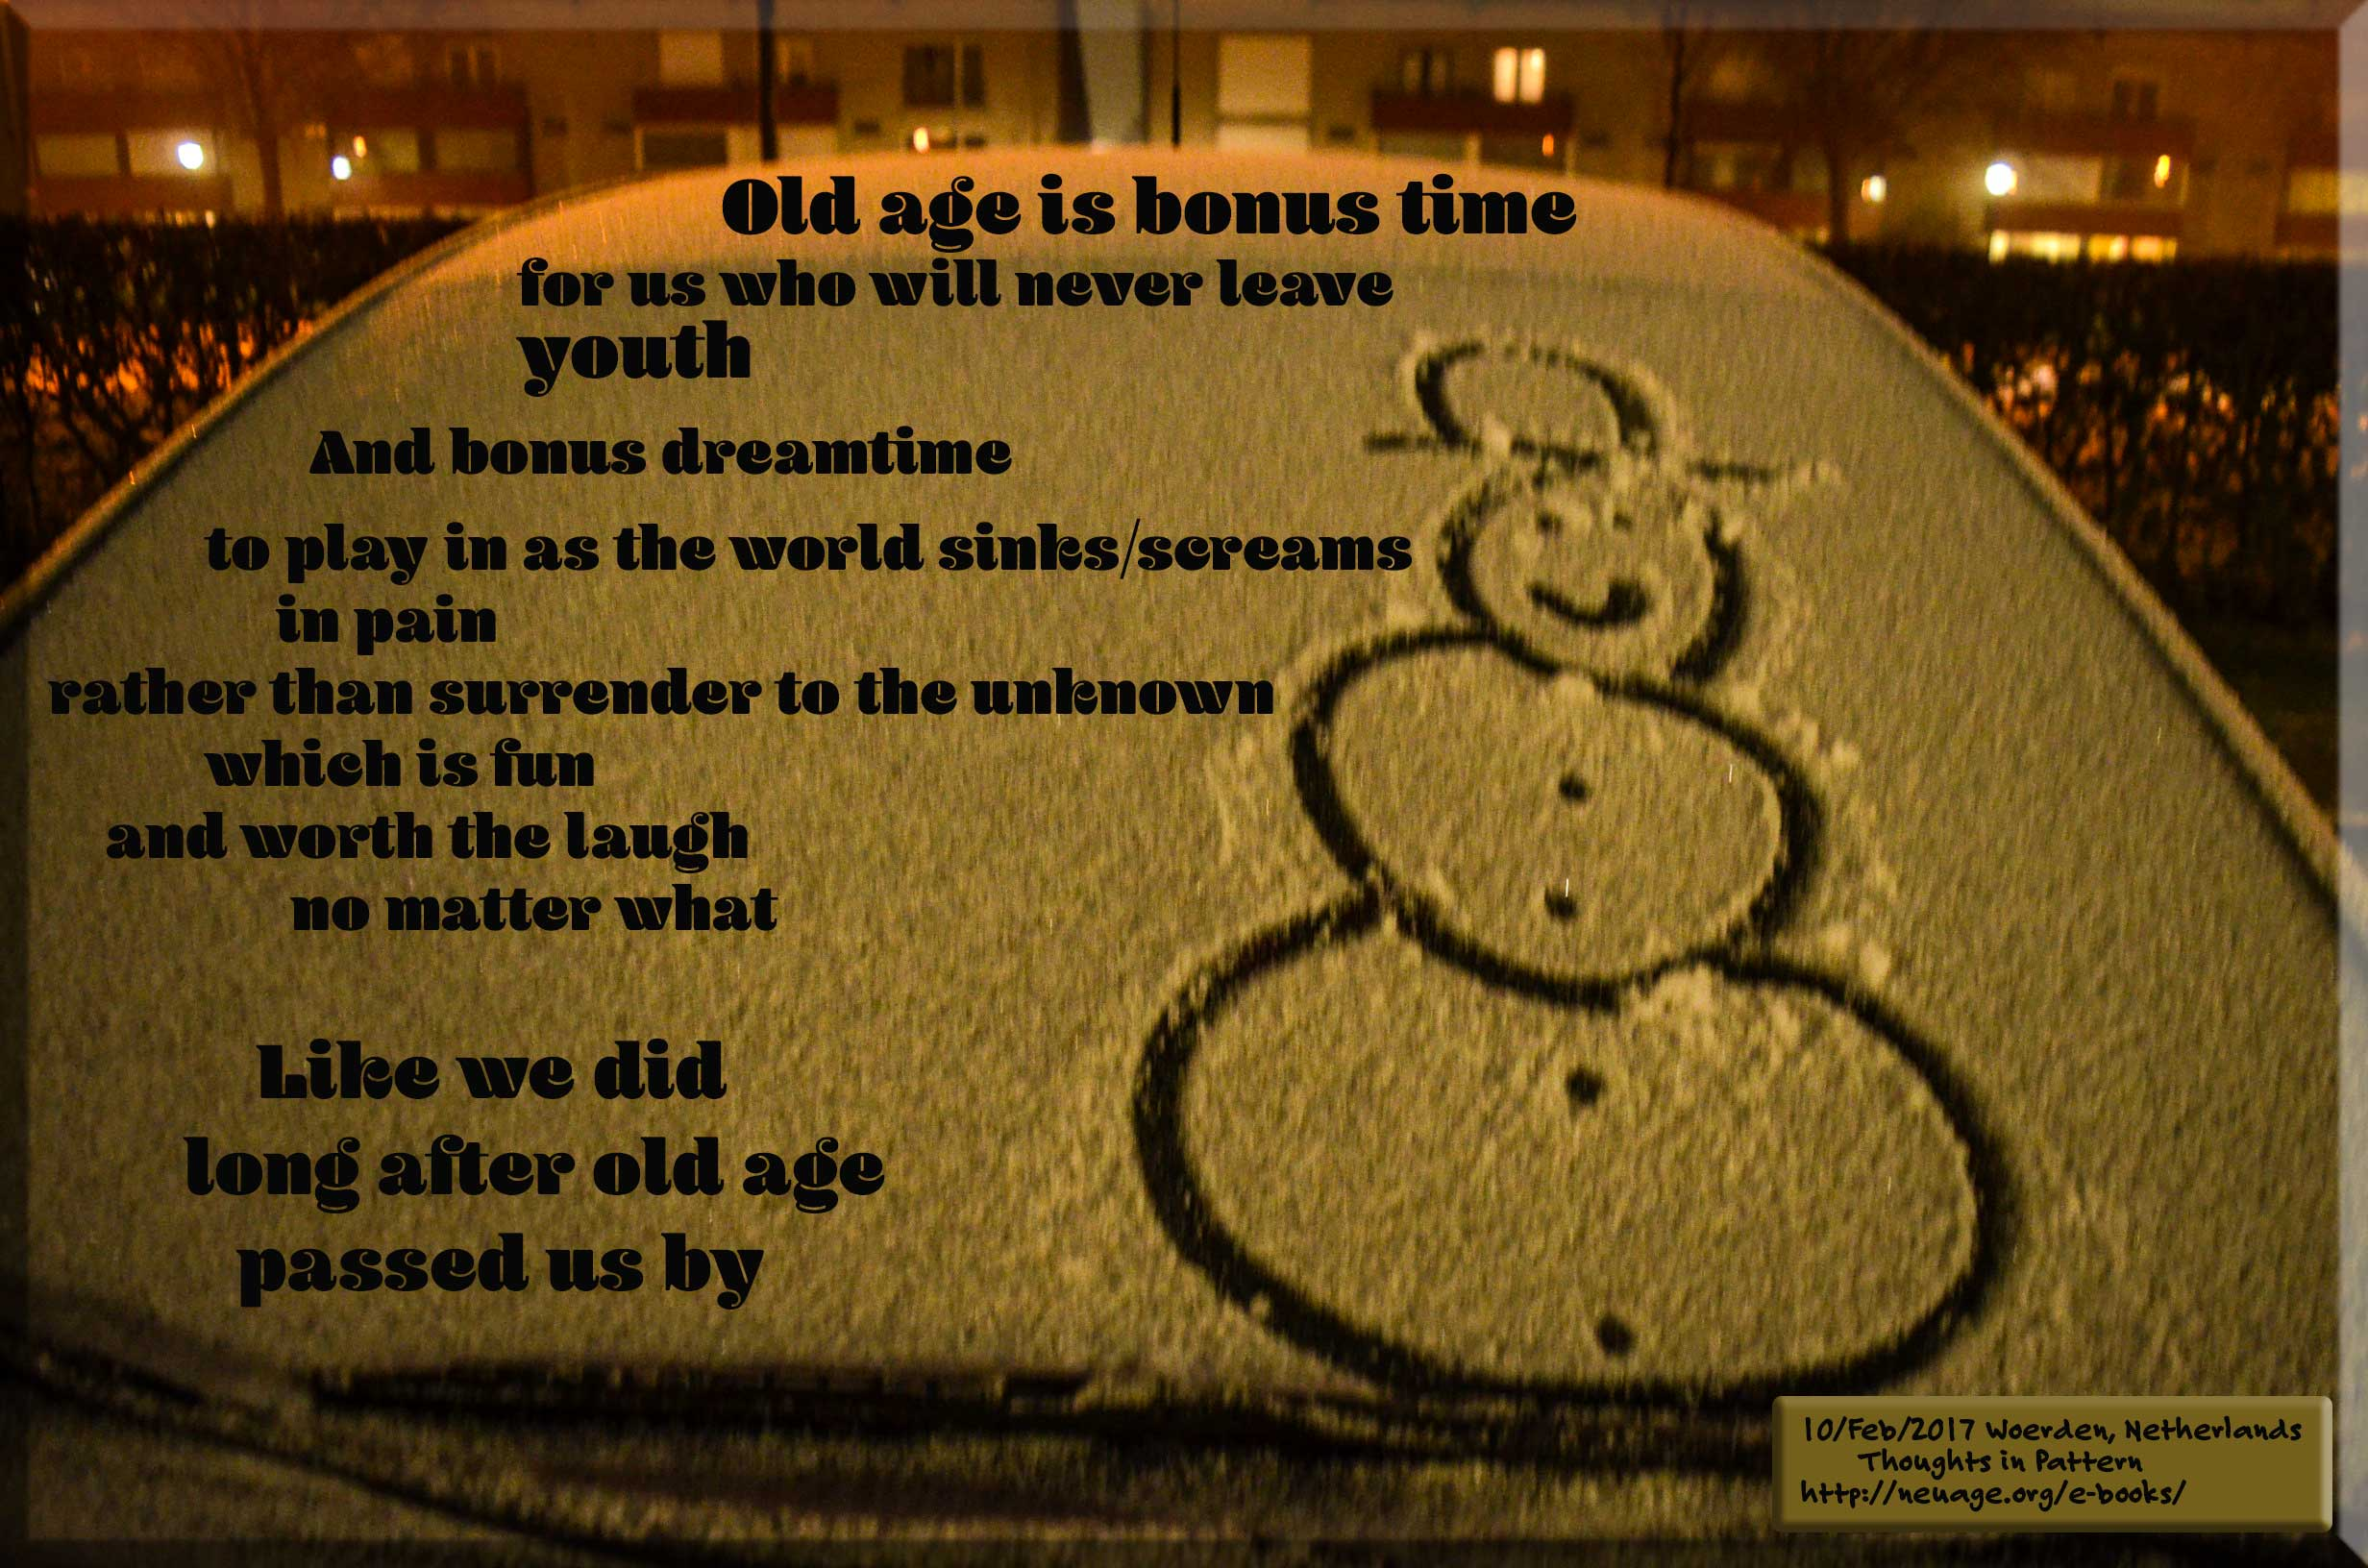 Old age is bonus time